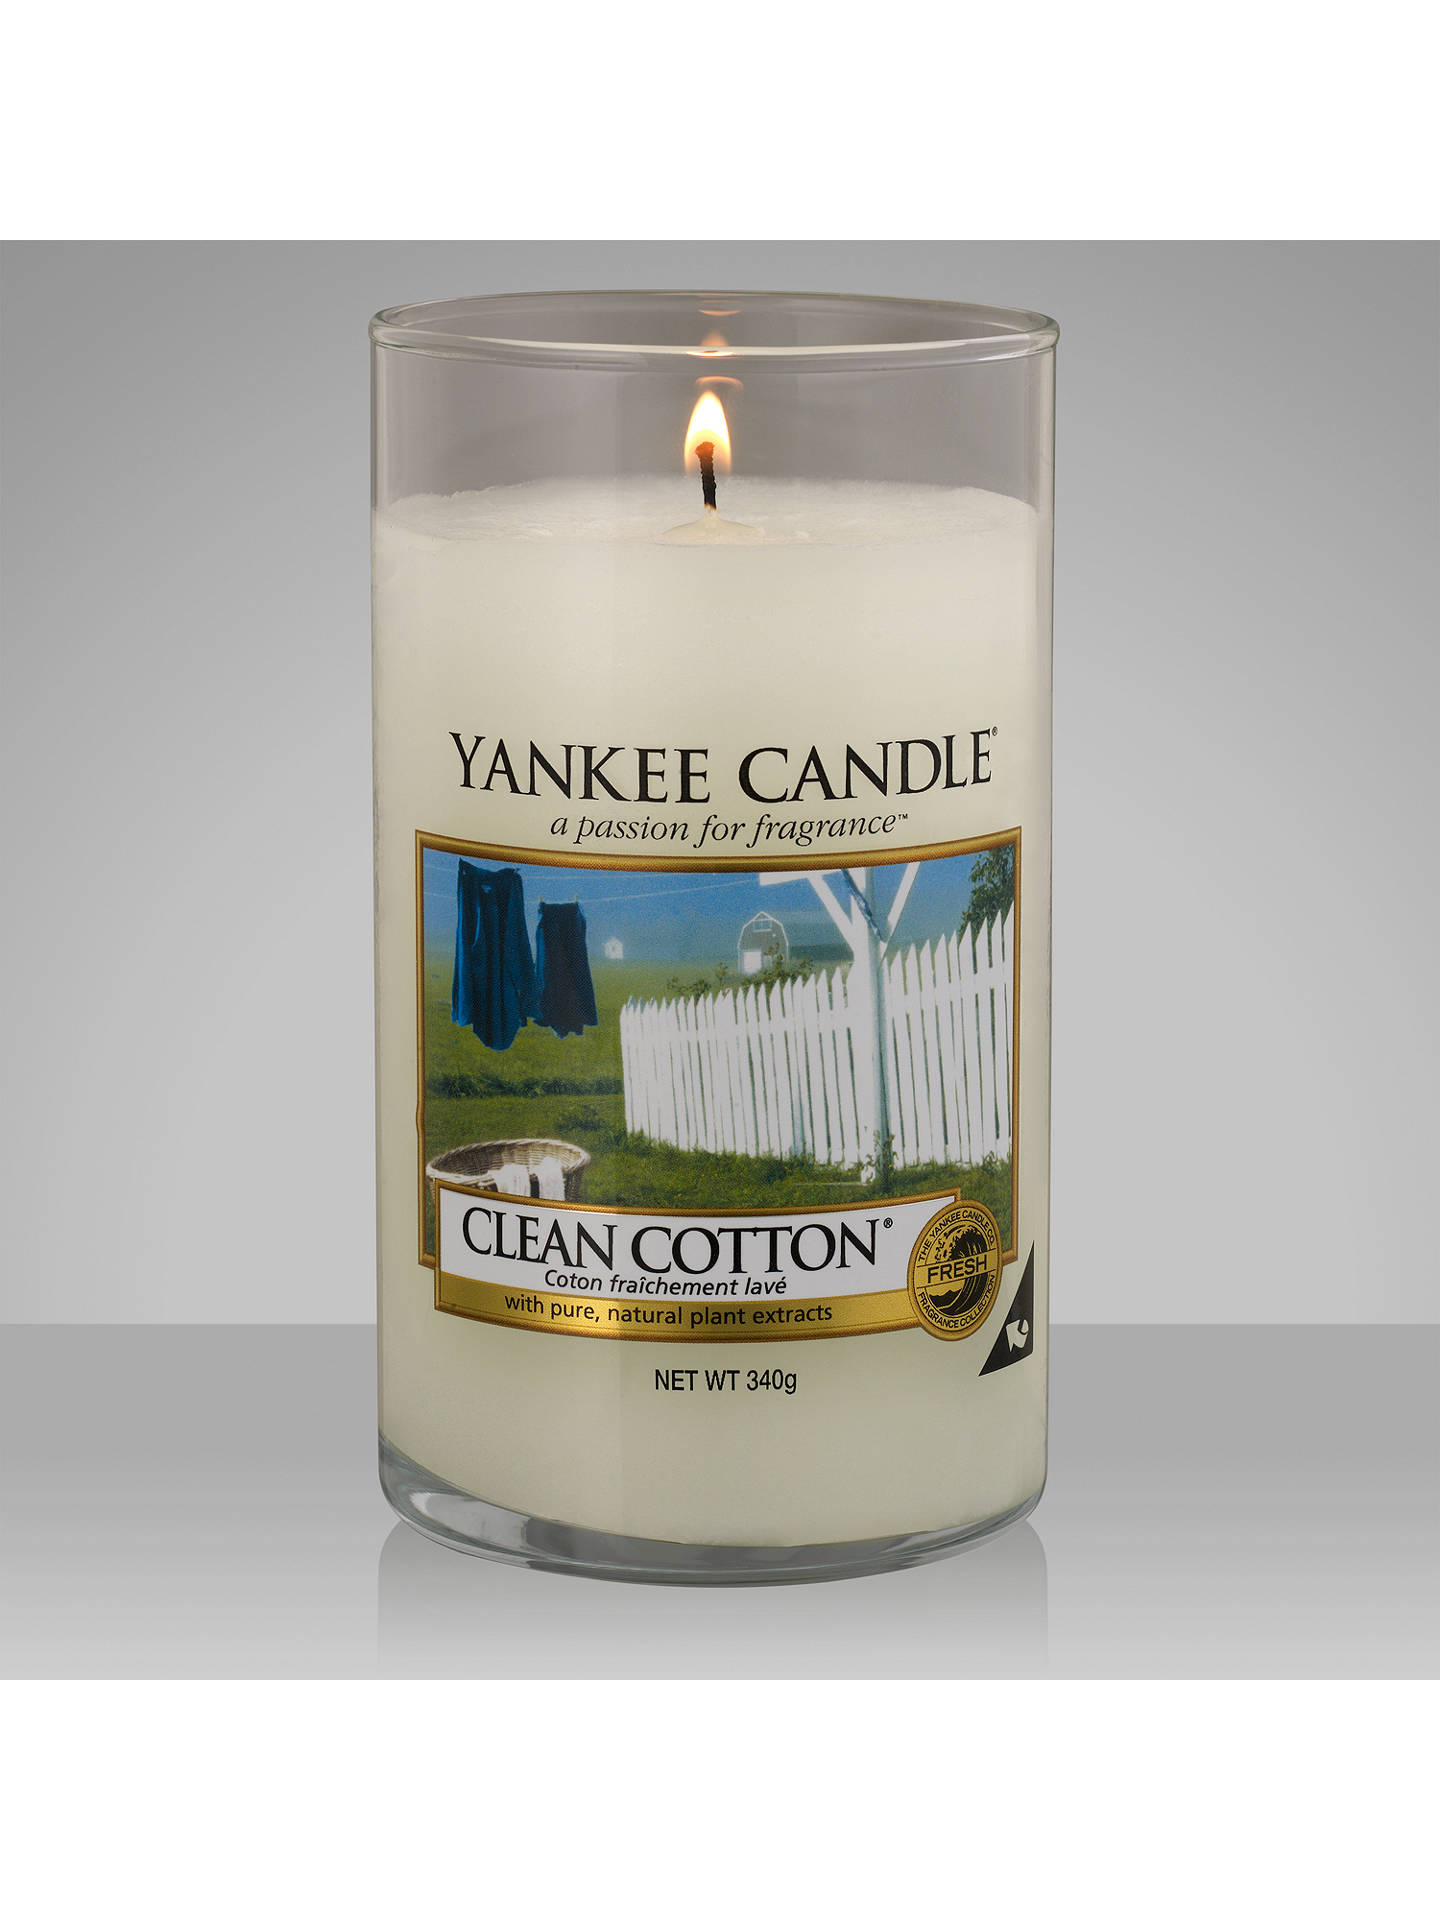 Yankee Candle Clean Cotton Scented Medium At John